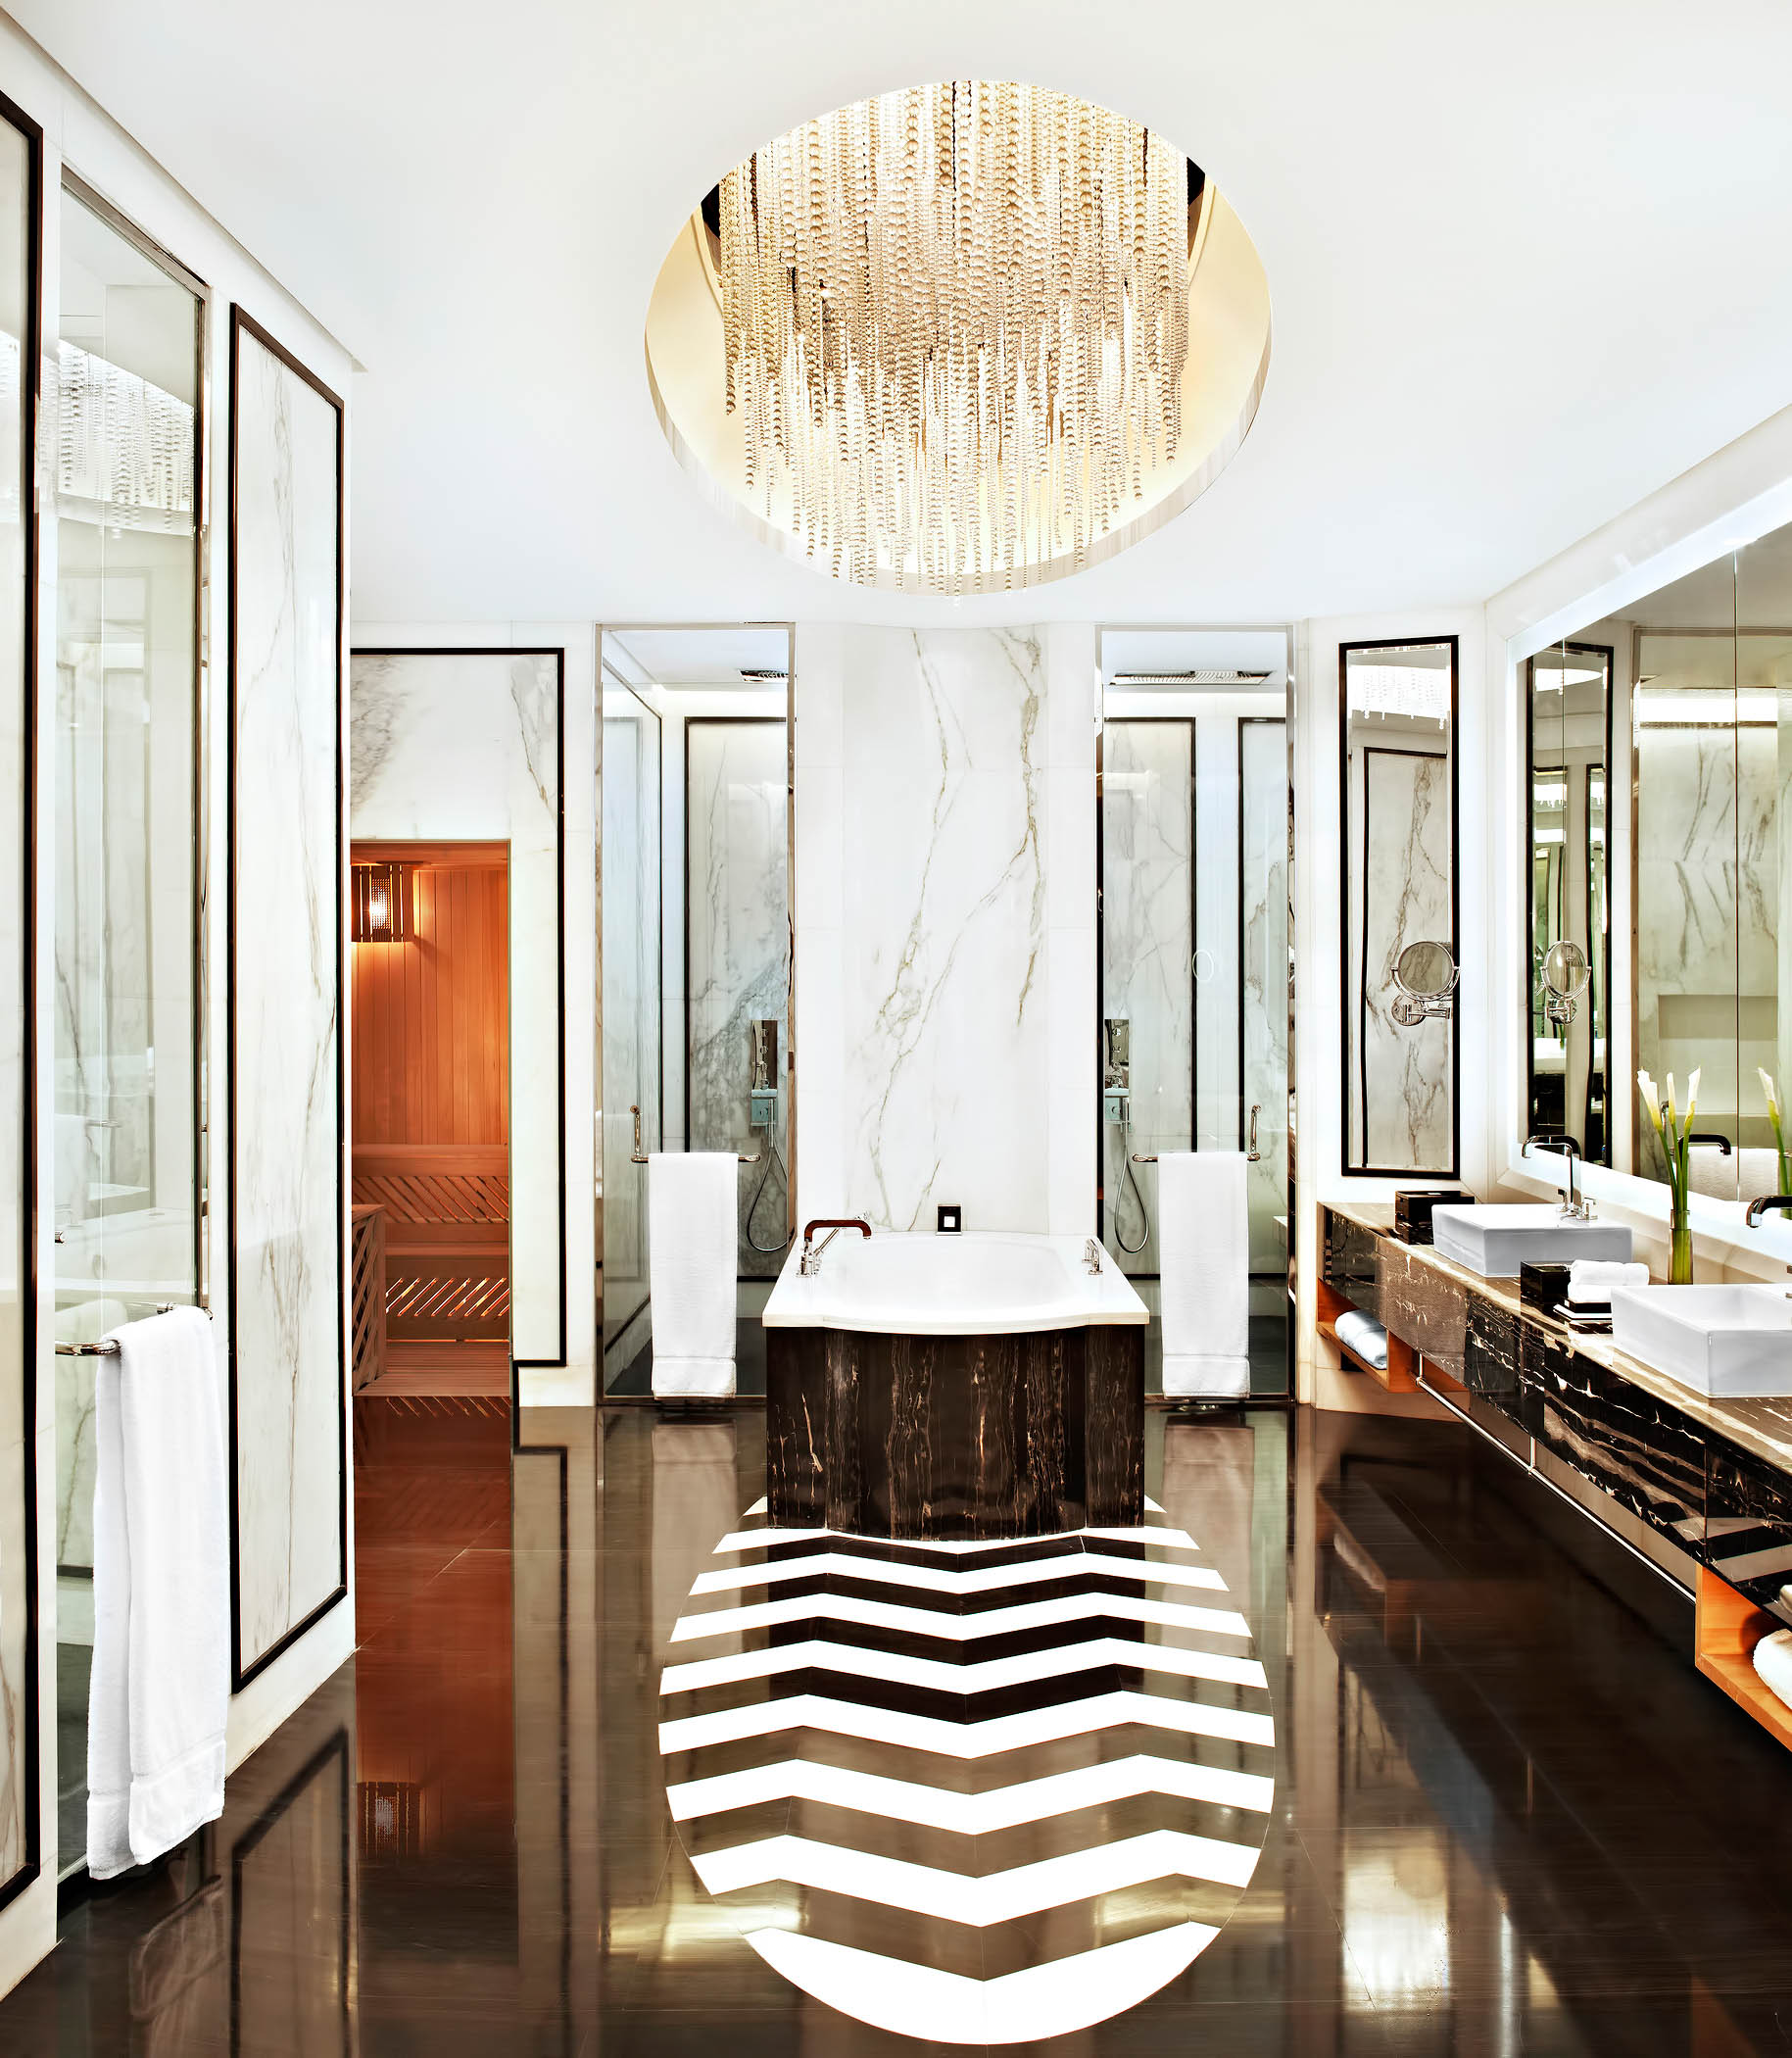 The St. Regis Tianjin Luxury Hotel - Tianjin, China - Riviera Restaurant - Presidential Suite Bathroom